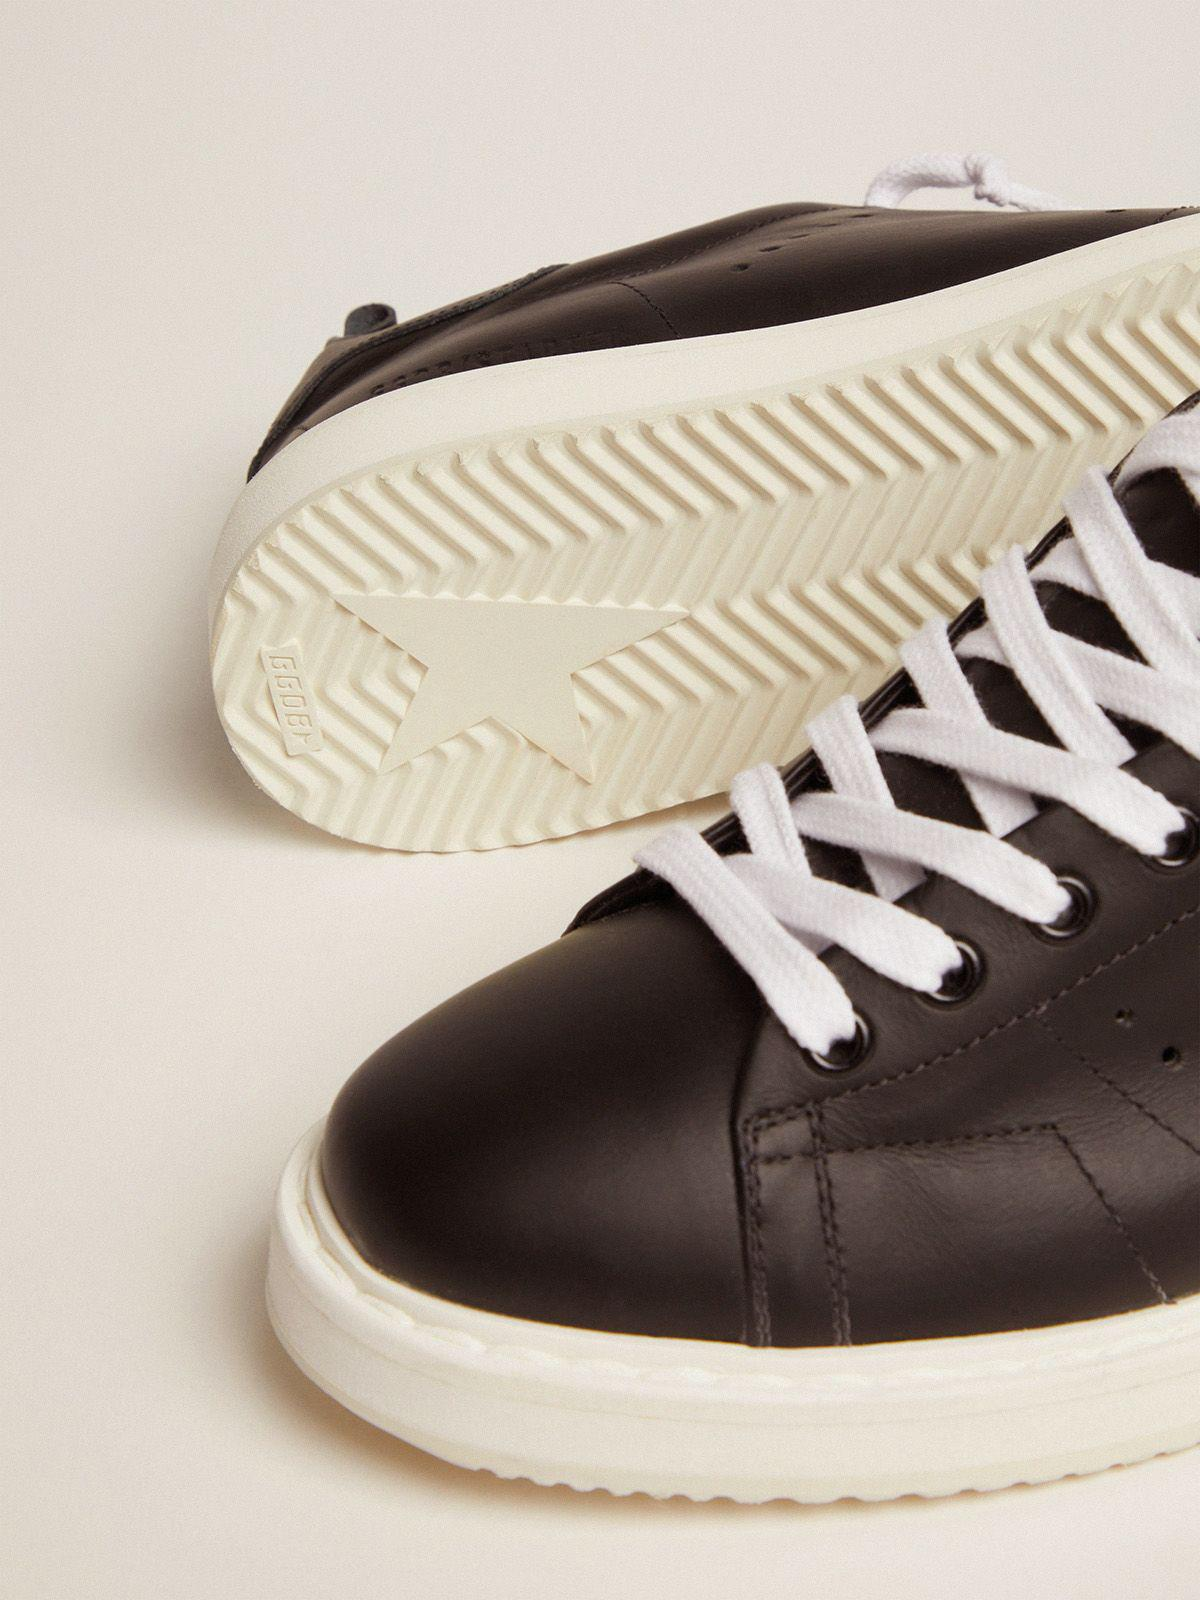 Starter sneakers in total black leather 2